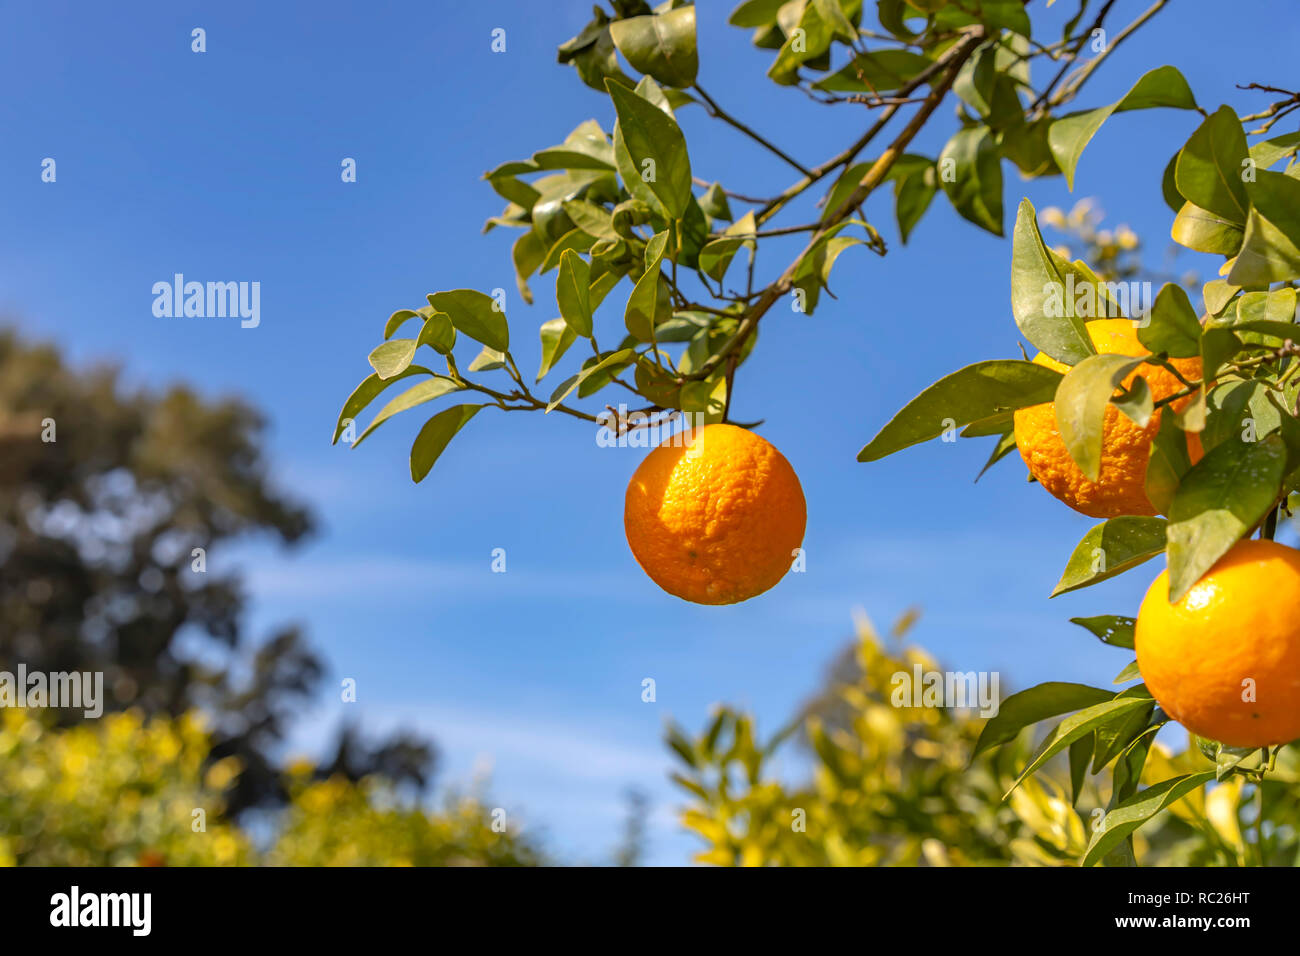 A branch with ripe tangerines close-up on a blurred background - Stock Image